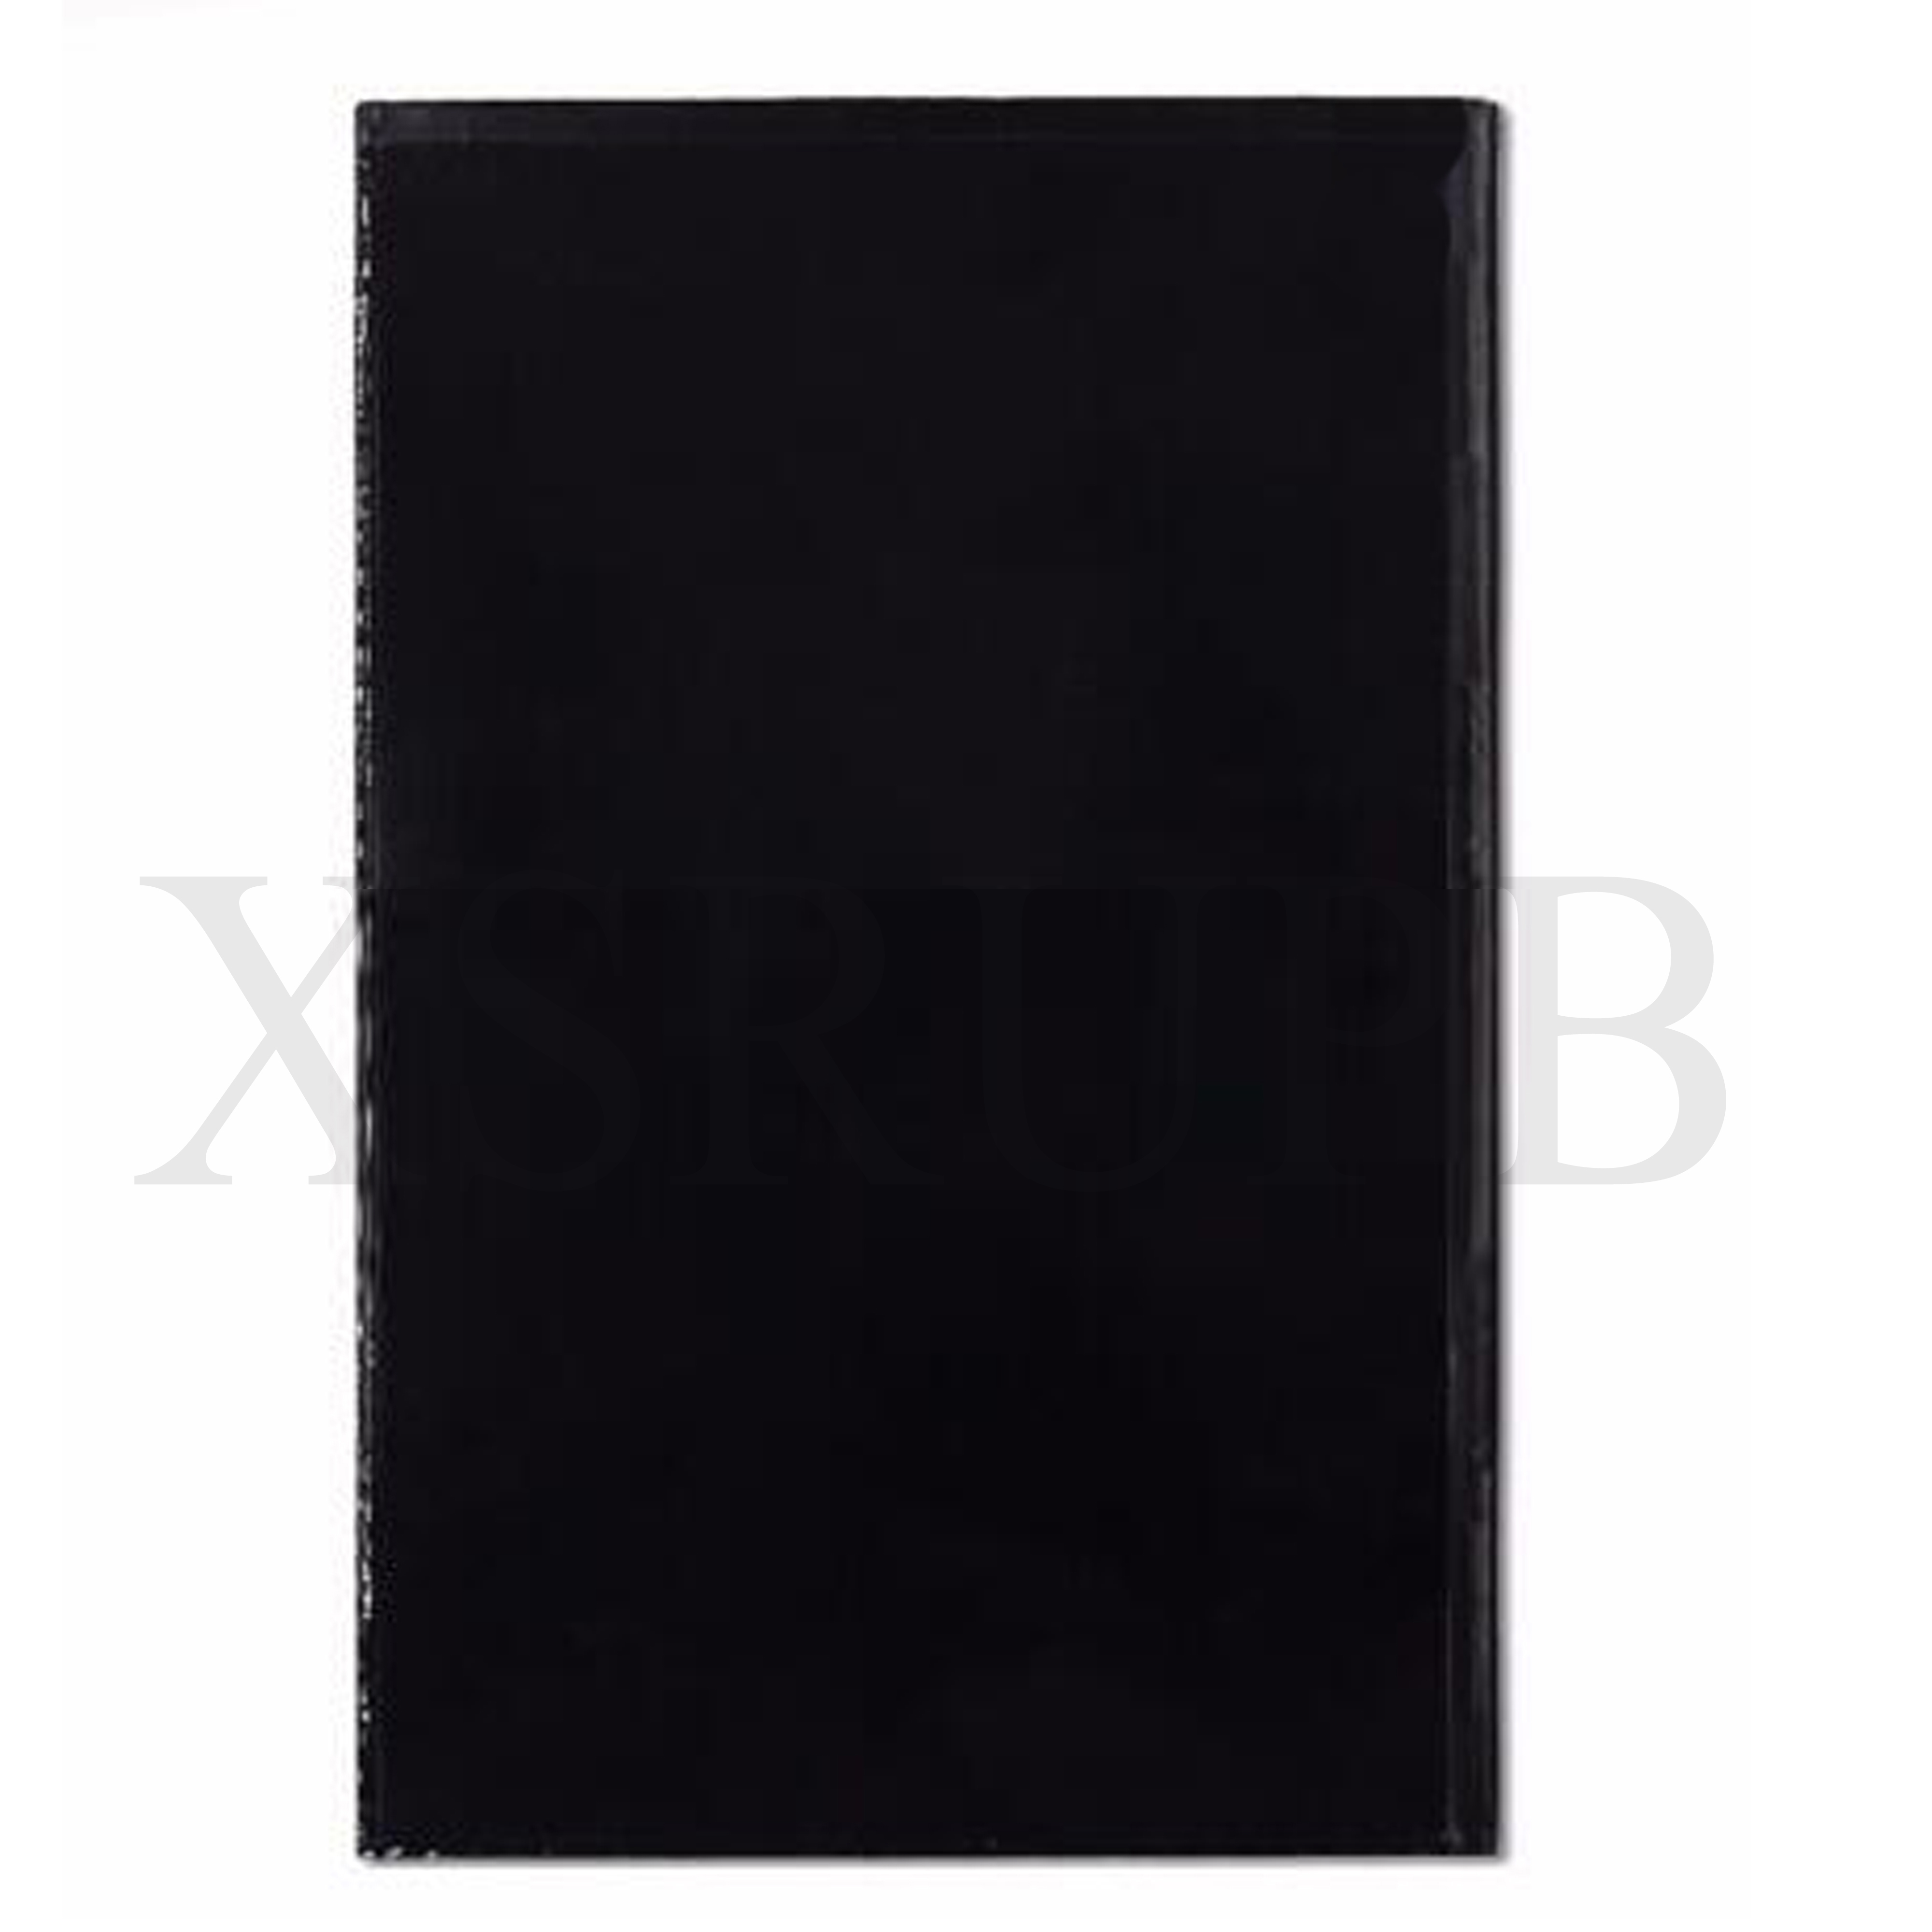 8.0 ORIGINAL IPS LCD Screen 1280x800 for Cube T8 Plus 4G LCD Display Internal Screen Panel Replacement<br>